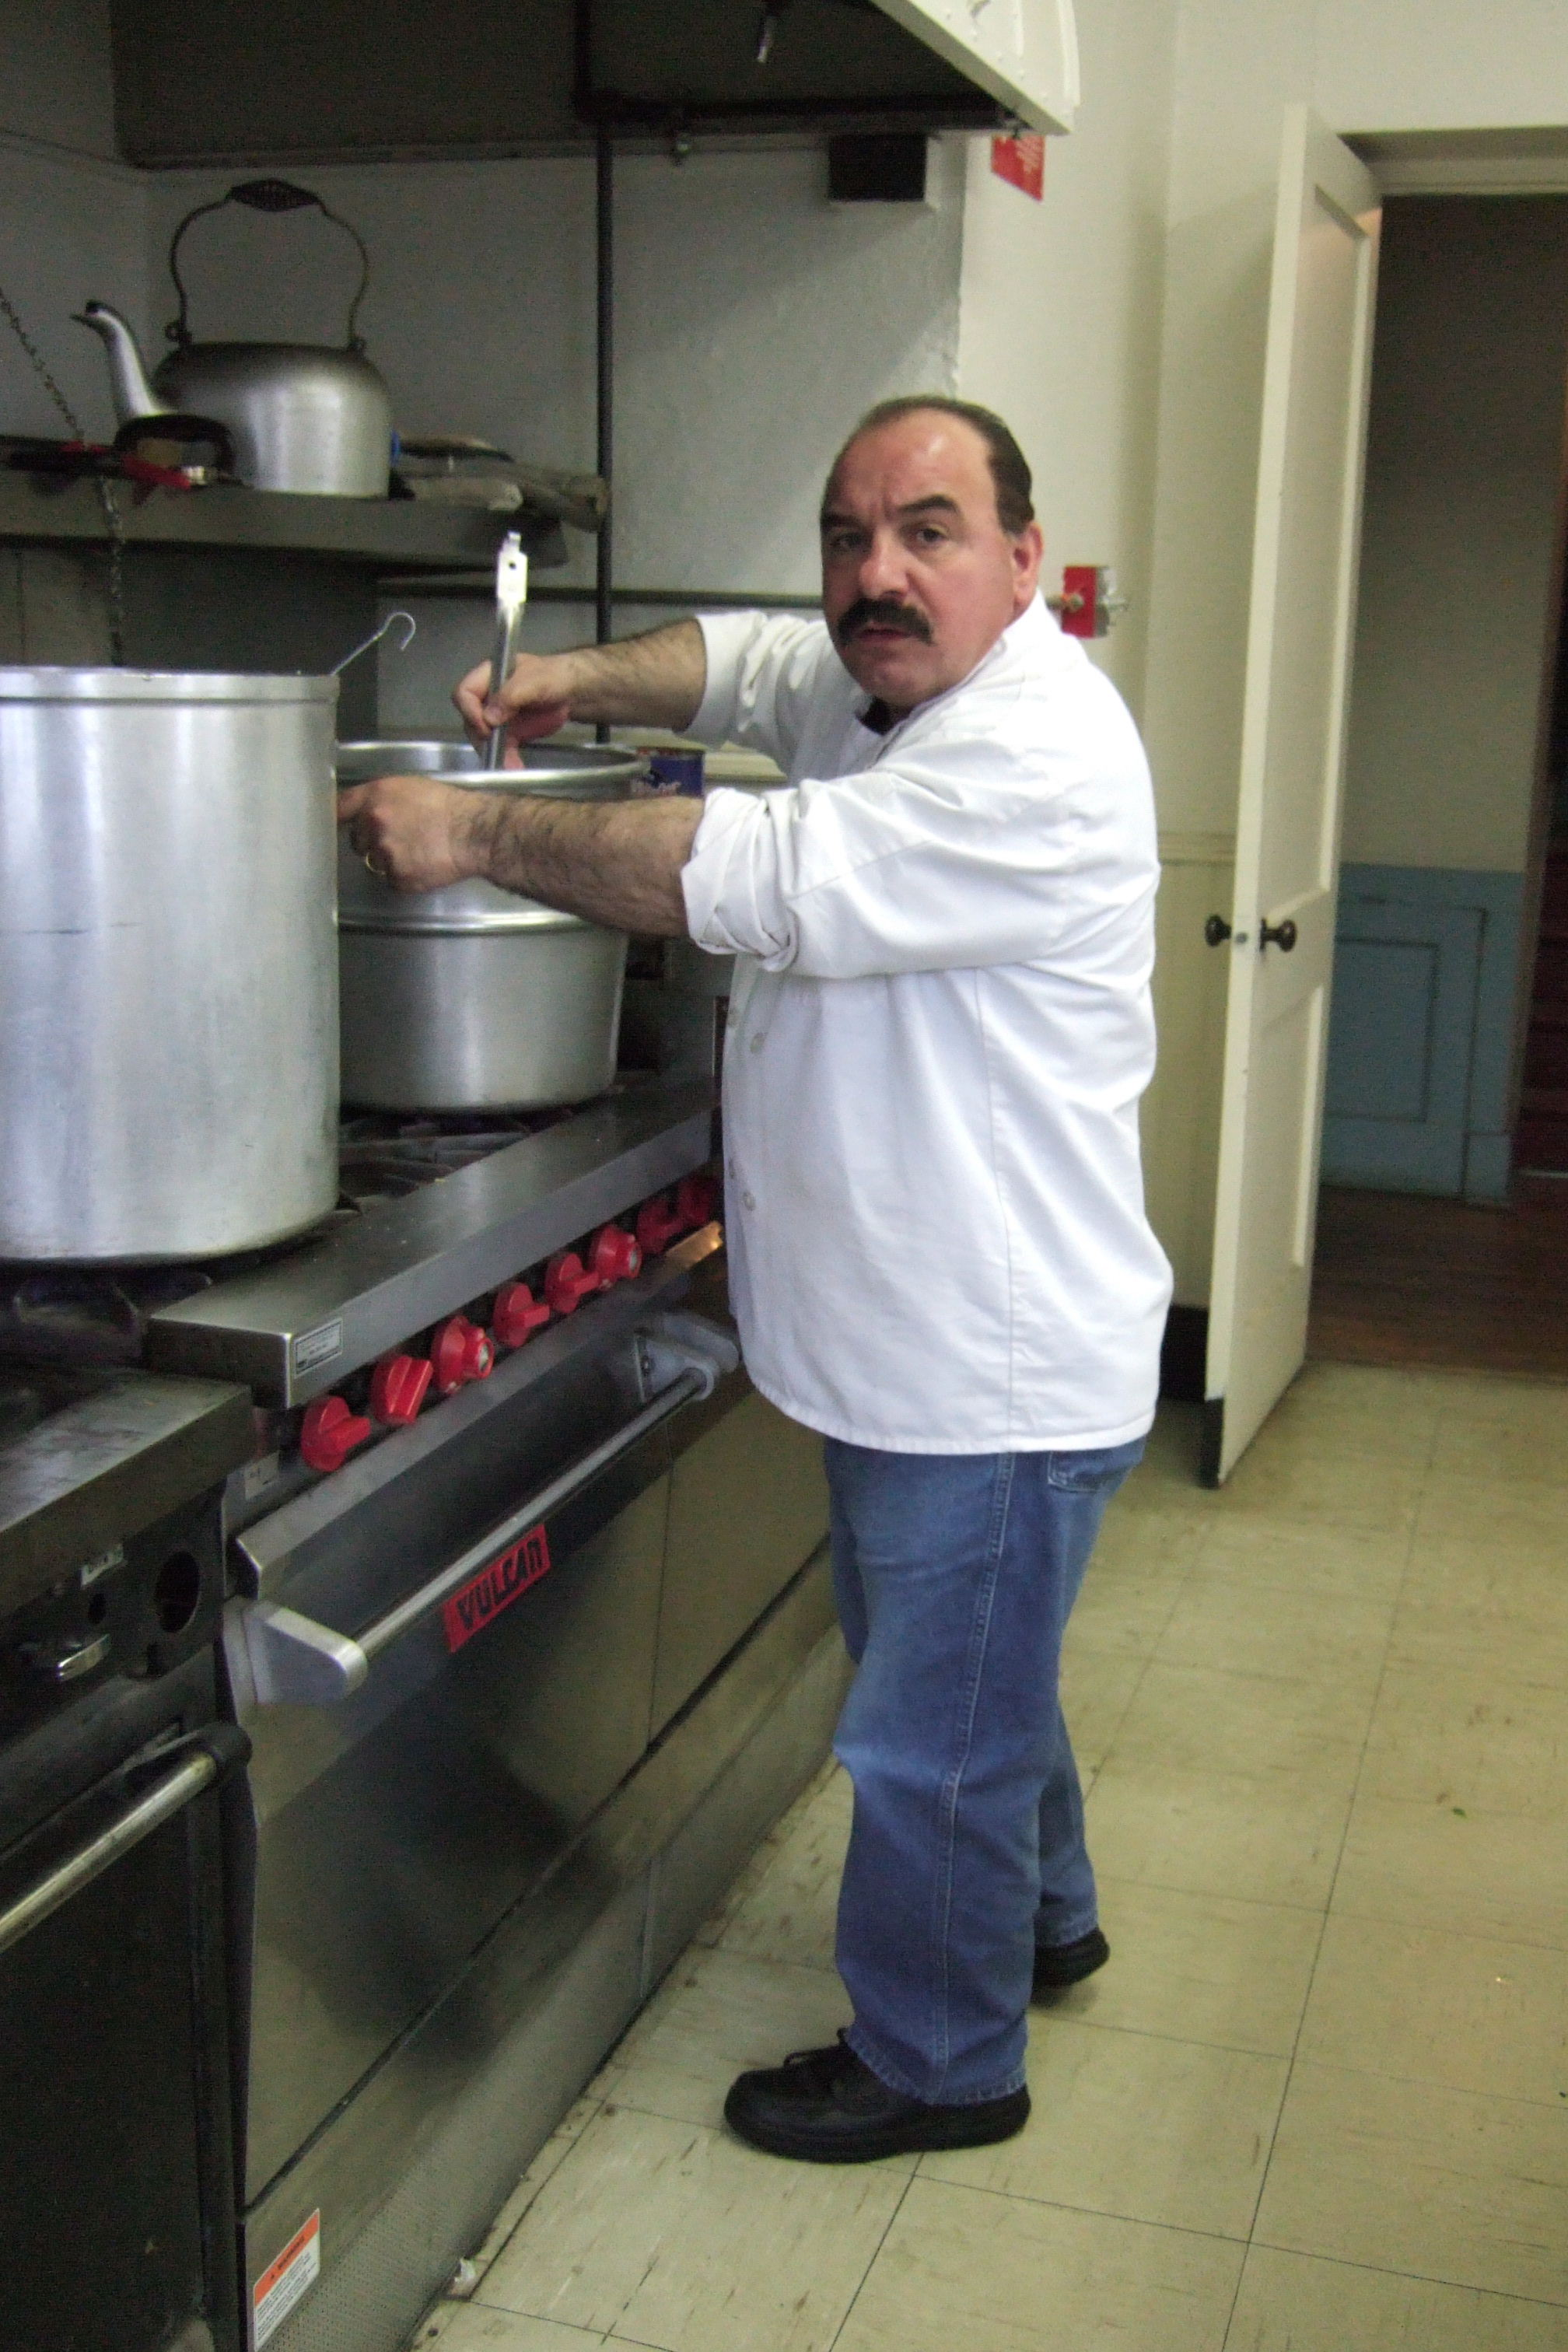 Chef Frank Imbergamo Preparing His Meatballs and Gravy